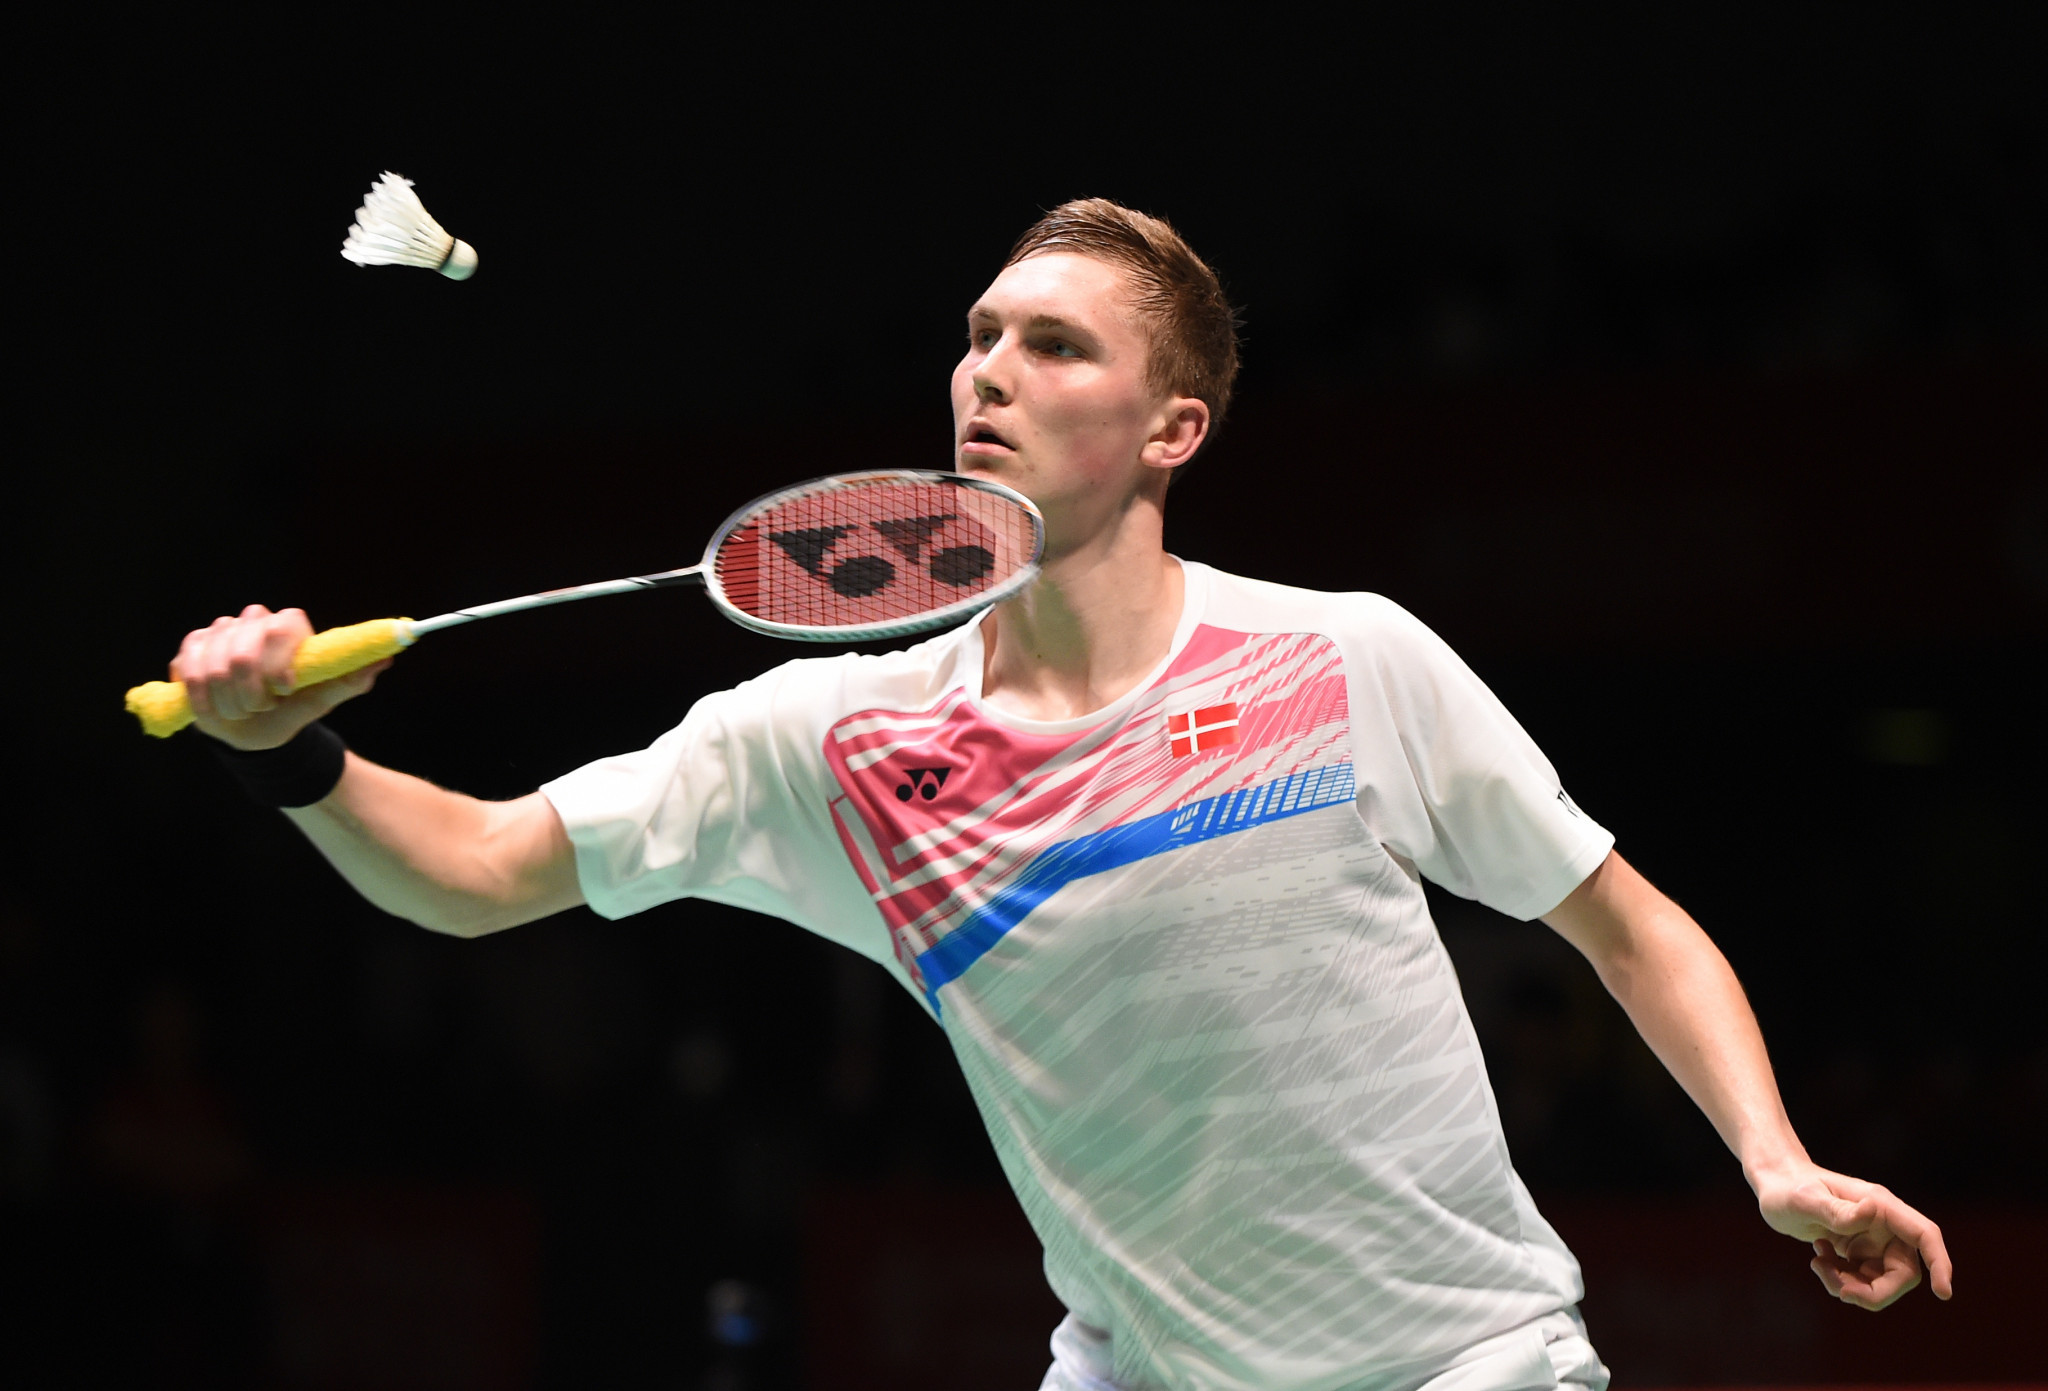 World champion among strong field on home soil at BWF Denmark Open